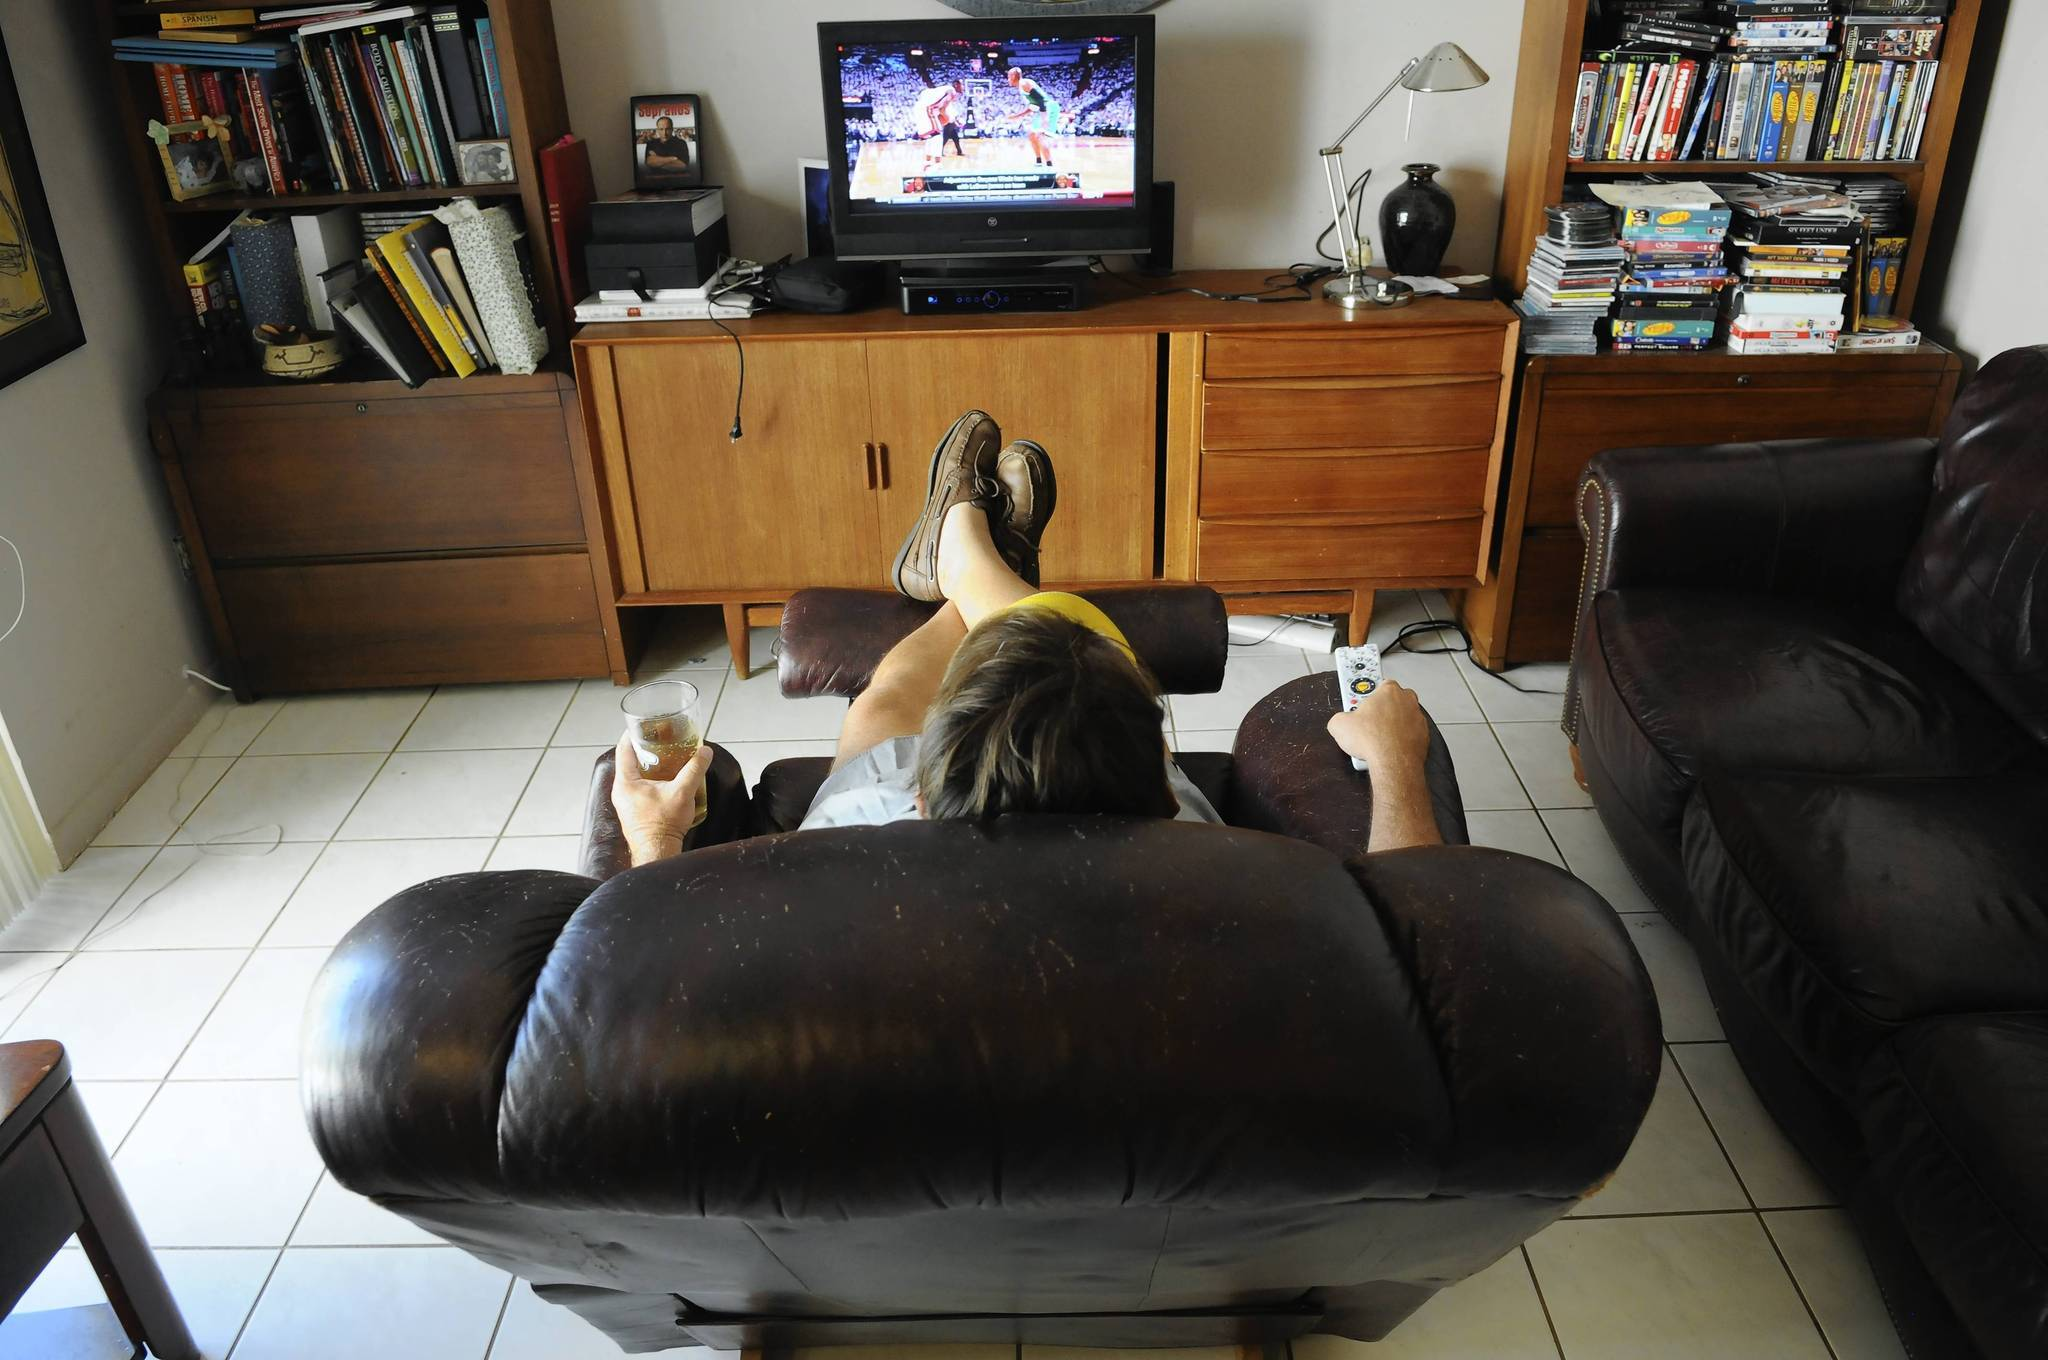 We don't have basements in South Florida, but we can create a mancave for the day. All you need is a big chair and a TV, then leave Dad alone with his remote control and favorite drink.